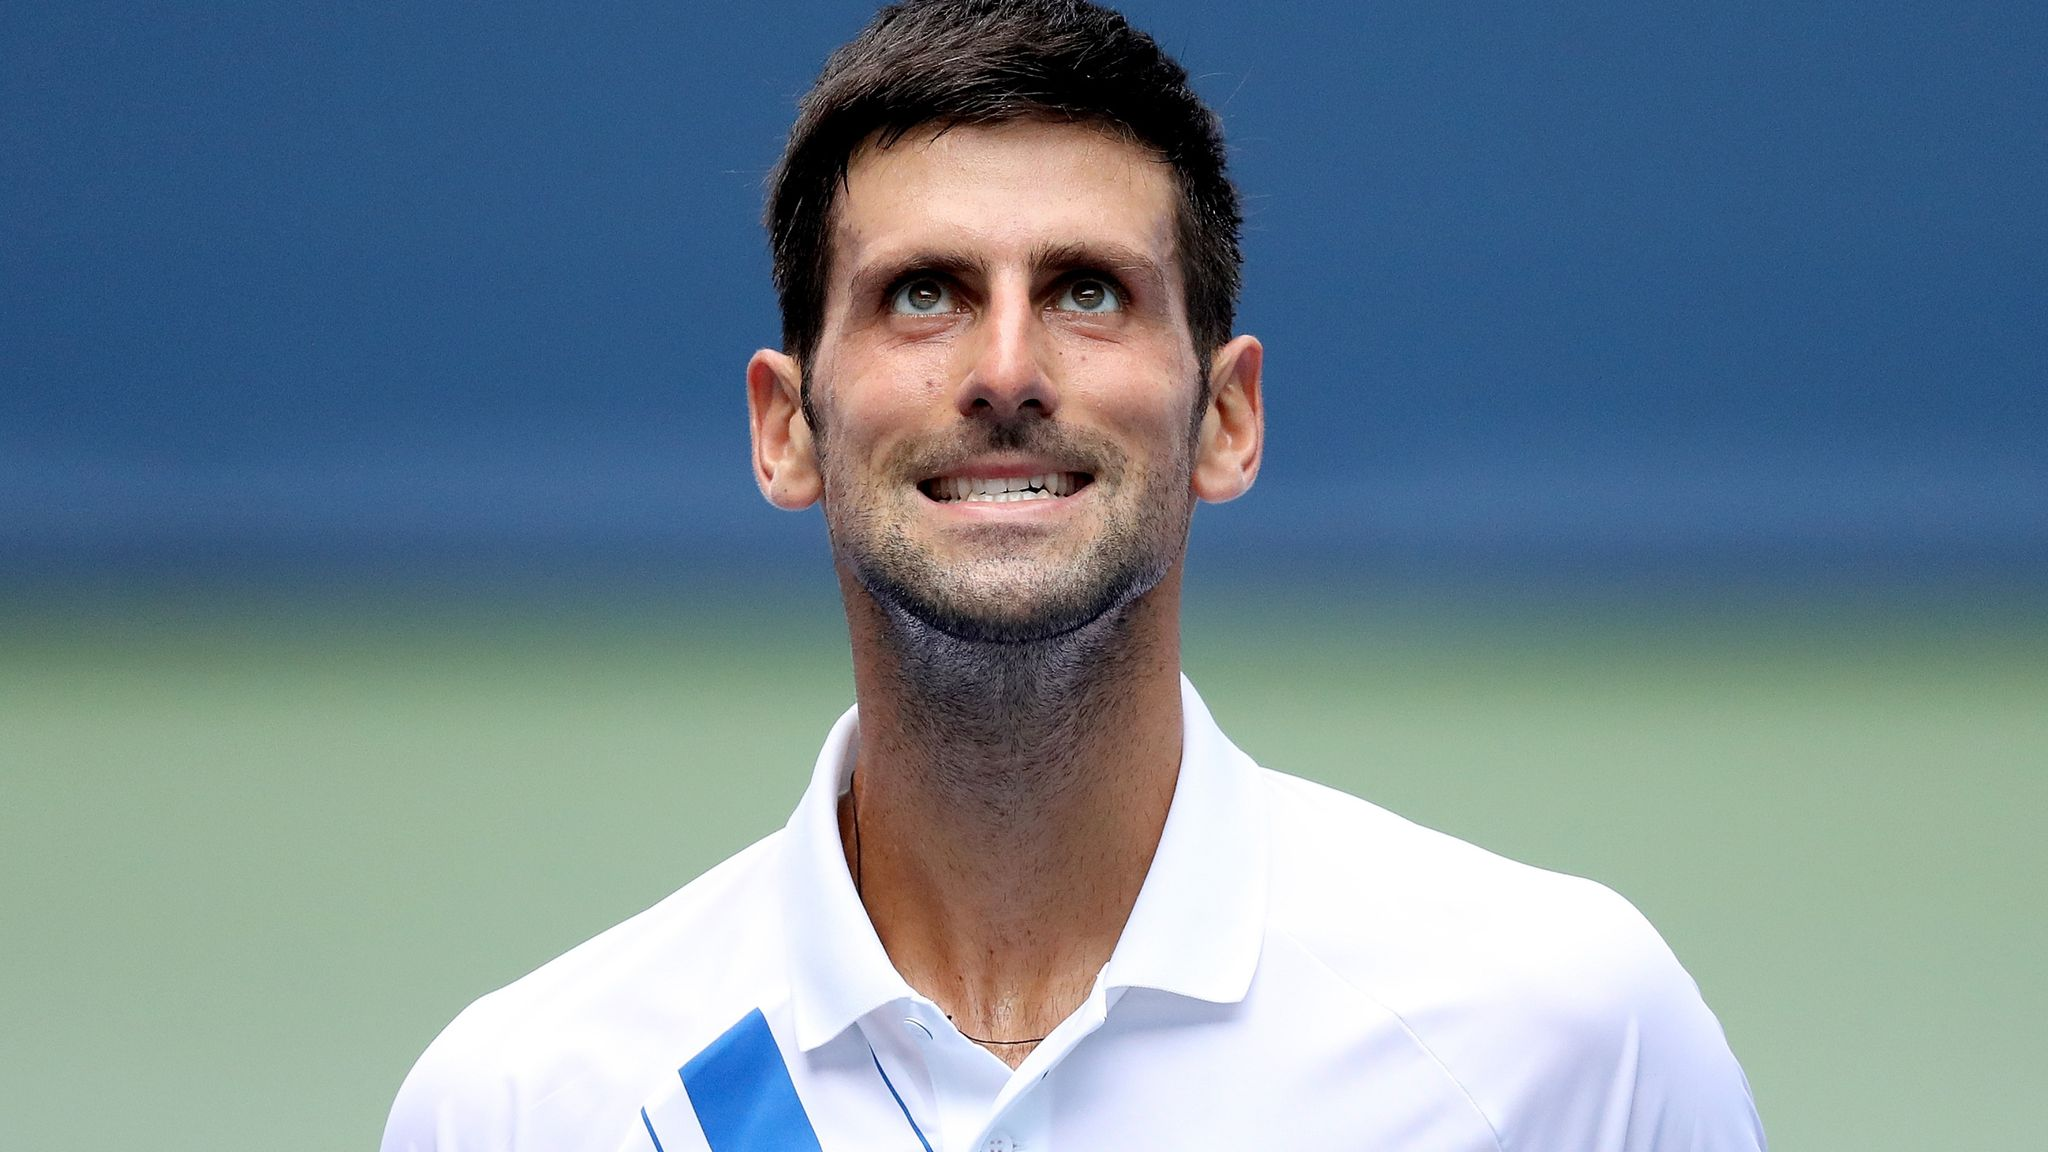 Novak Djokovic Keen For Breakaway Tennis Union Despite High Profile Resistance Tennis News Sky Sports